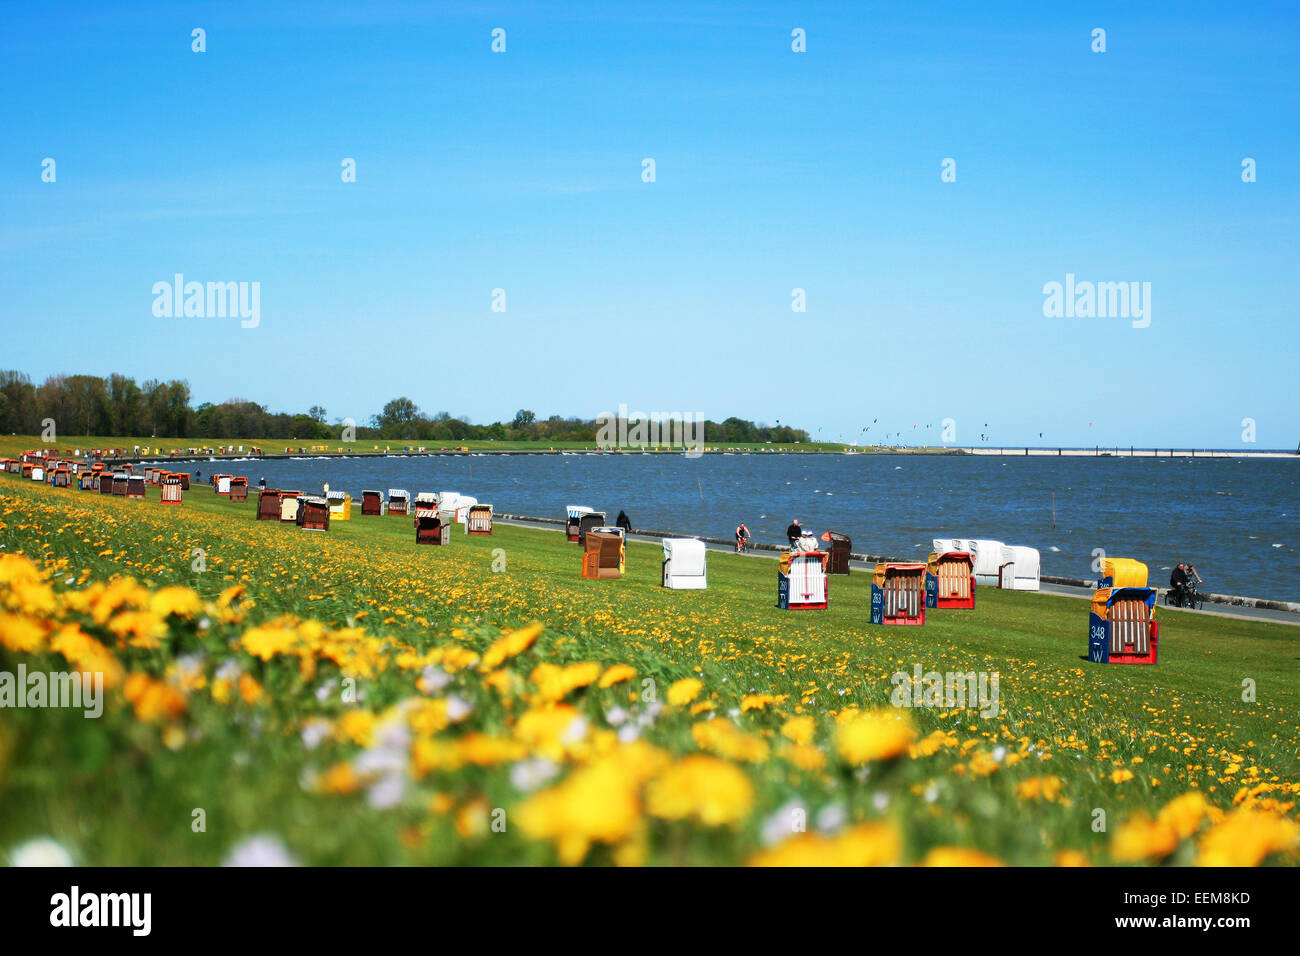 Germany, Cuxhaven, Spring time at seaside - Stock Image